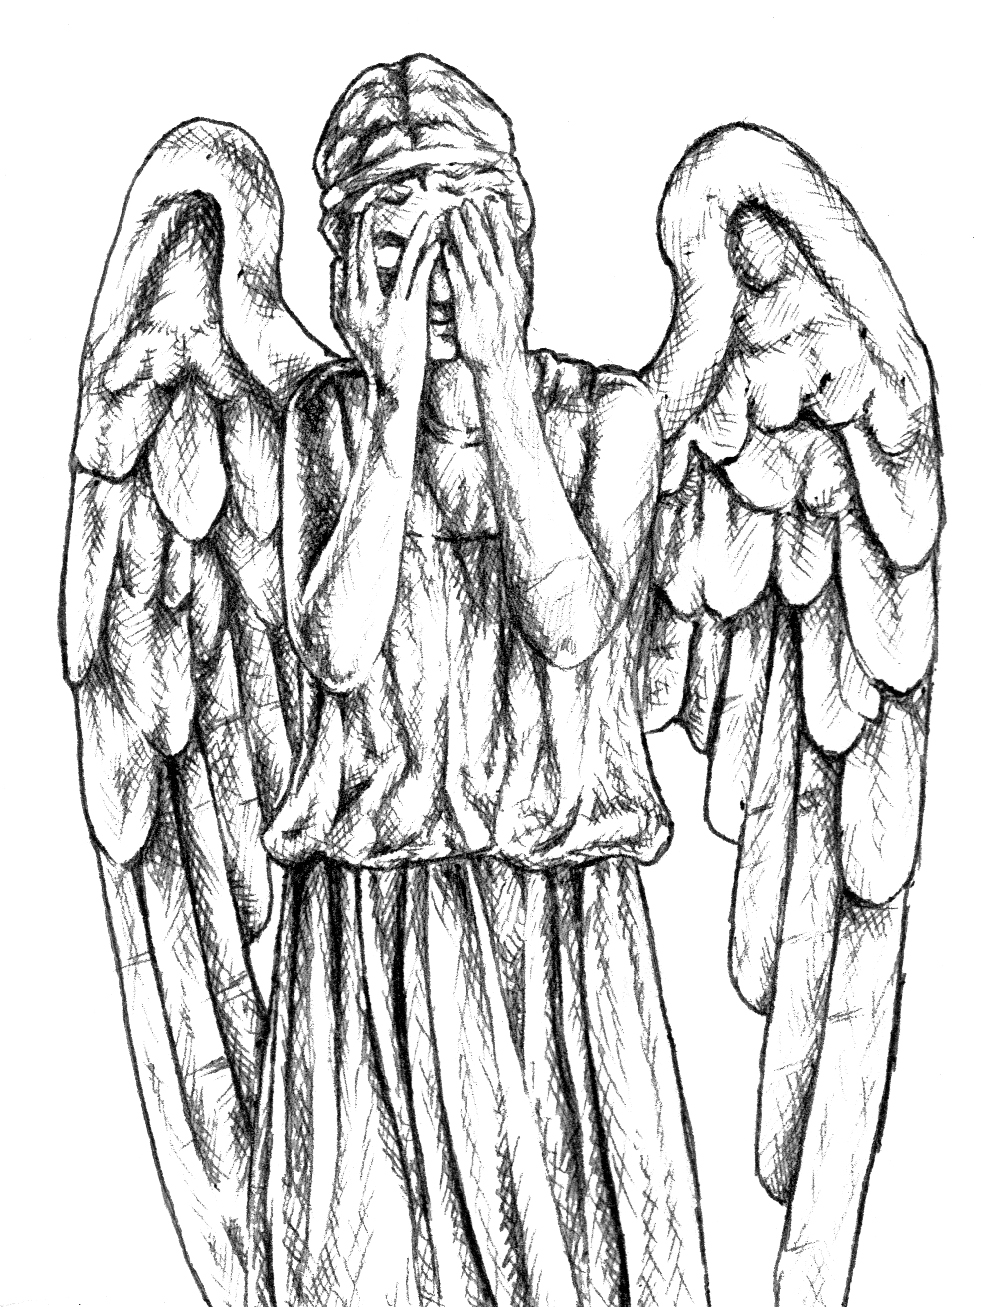 Angel sketches in pencil yupar magdalene project org